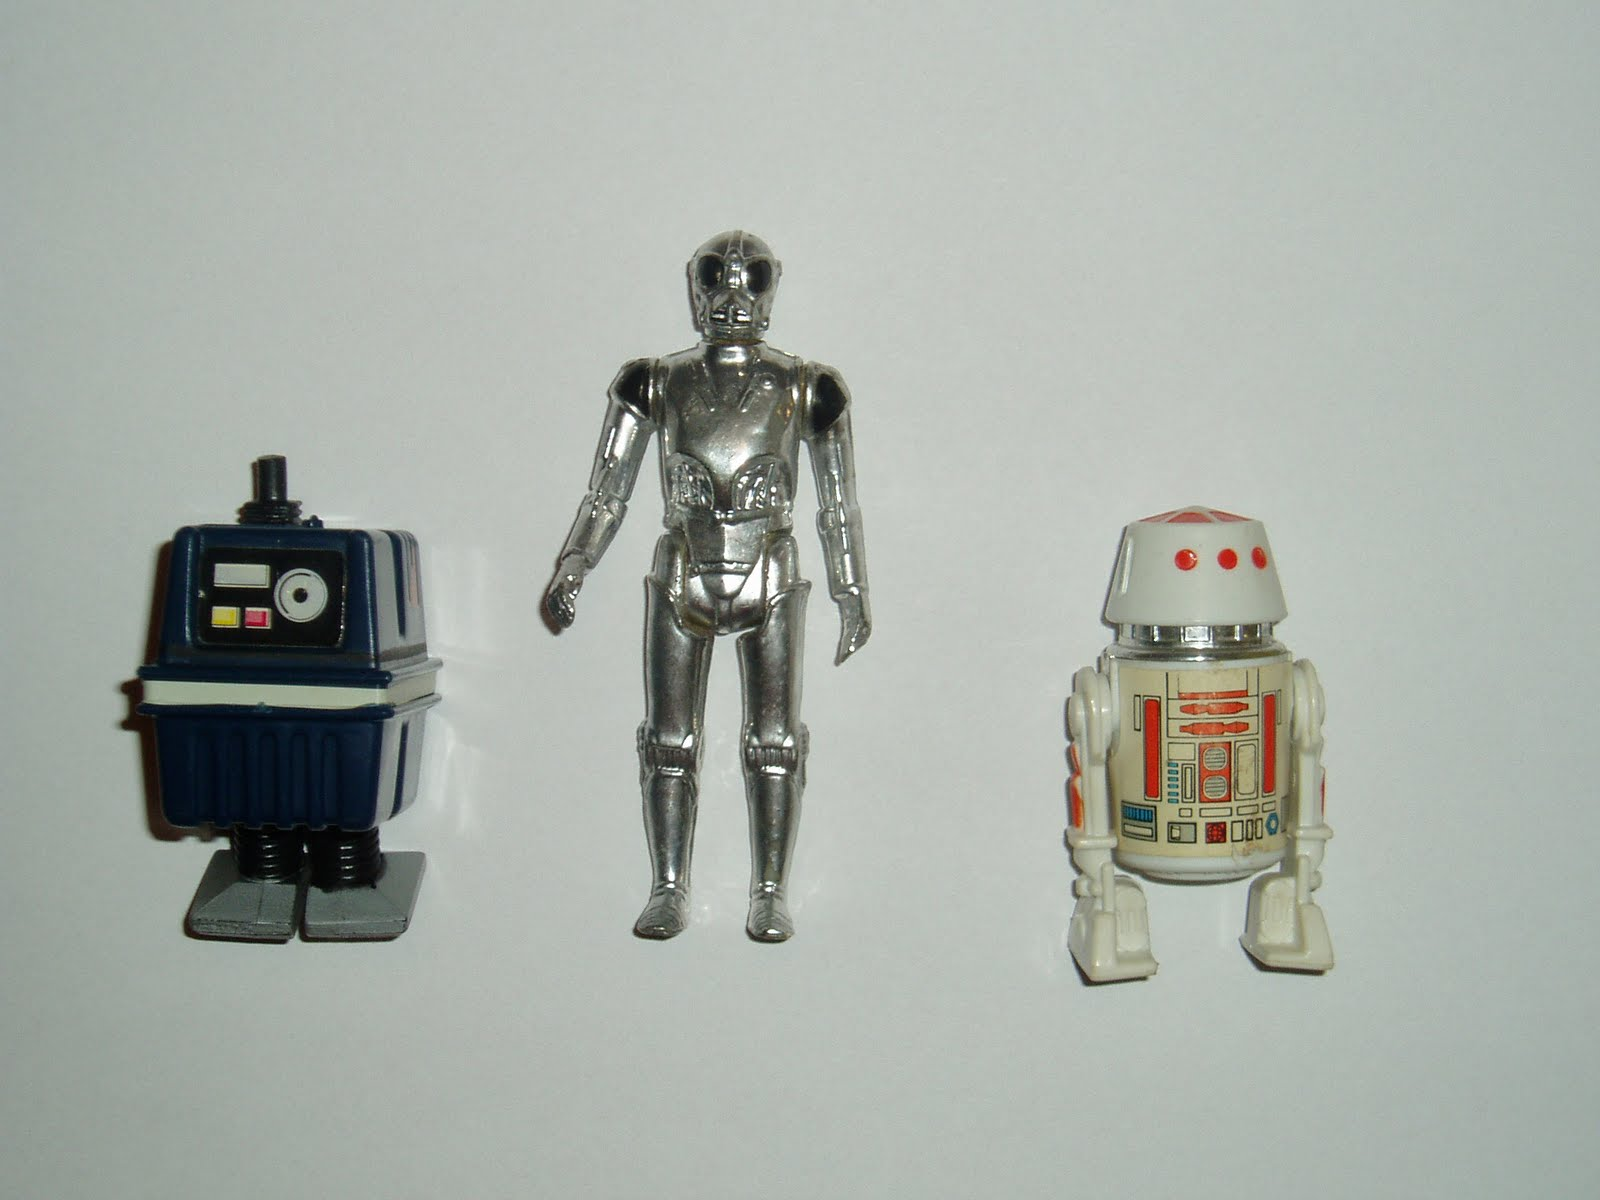 Star Wars Droids Toys : Star wars collector s kenner